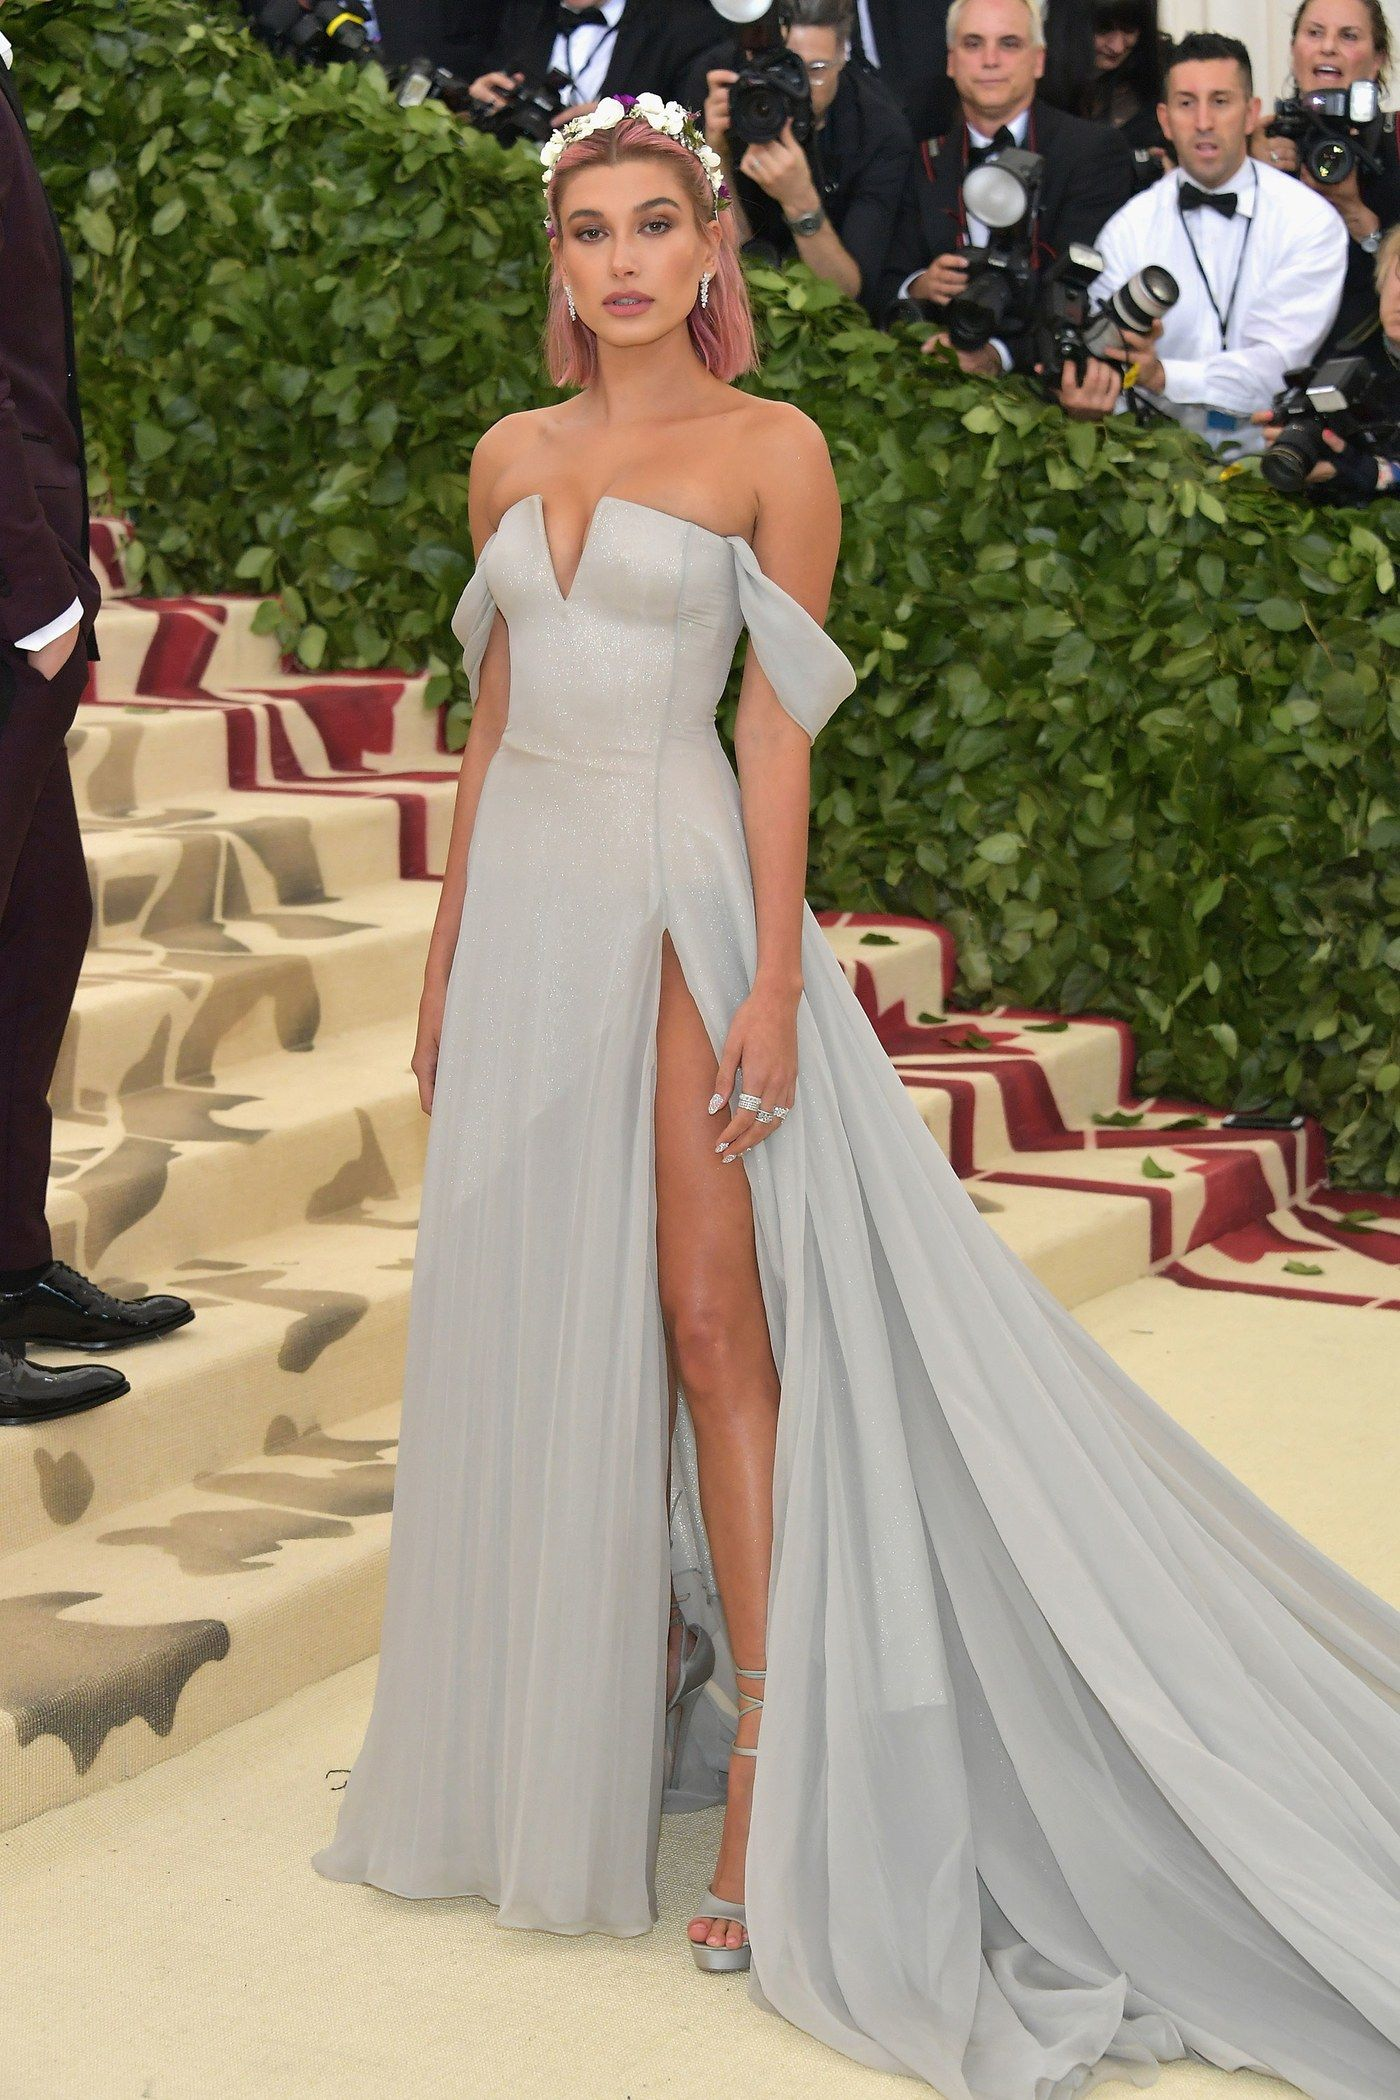 The 12 Best Met Gala Red Carpet to AfterParty Quick